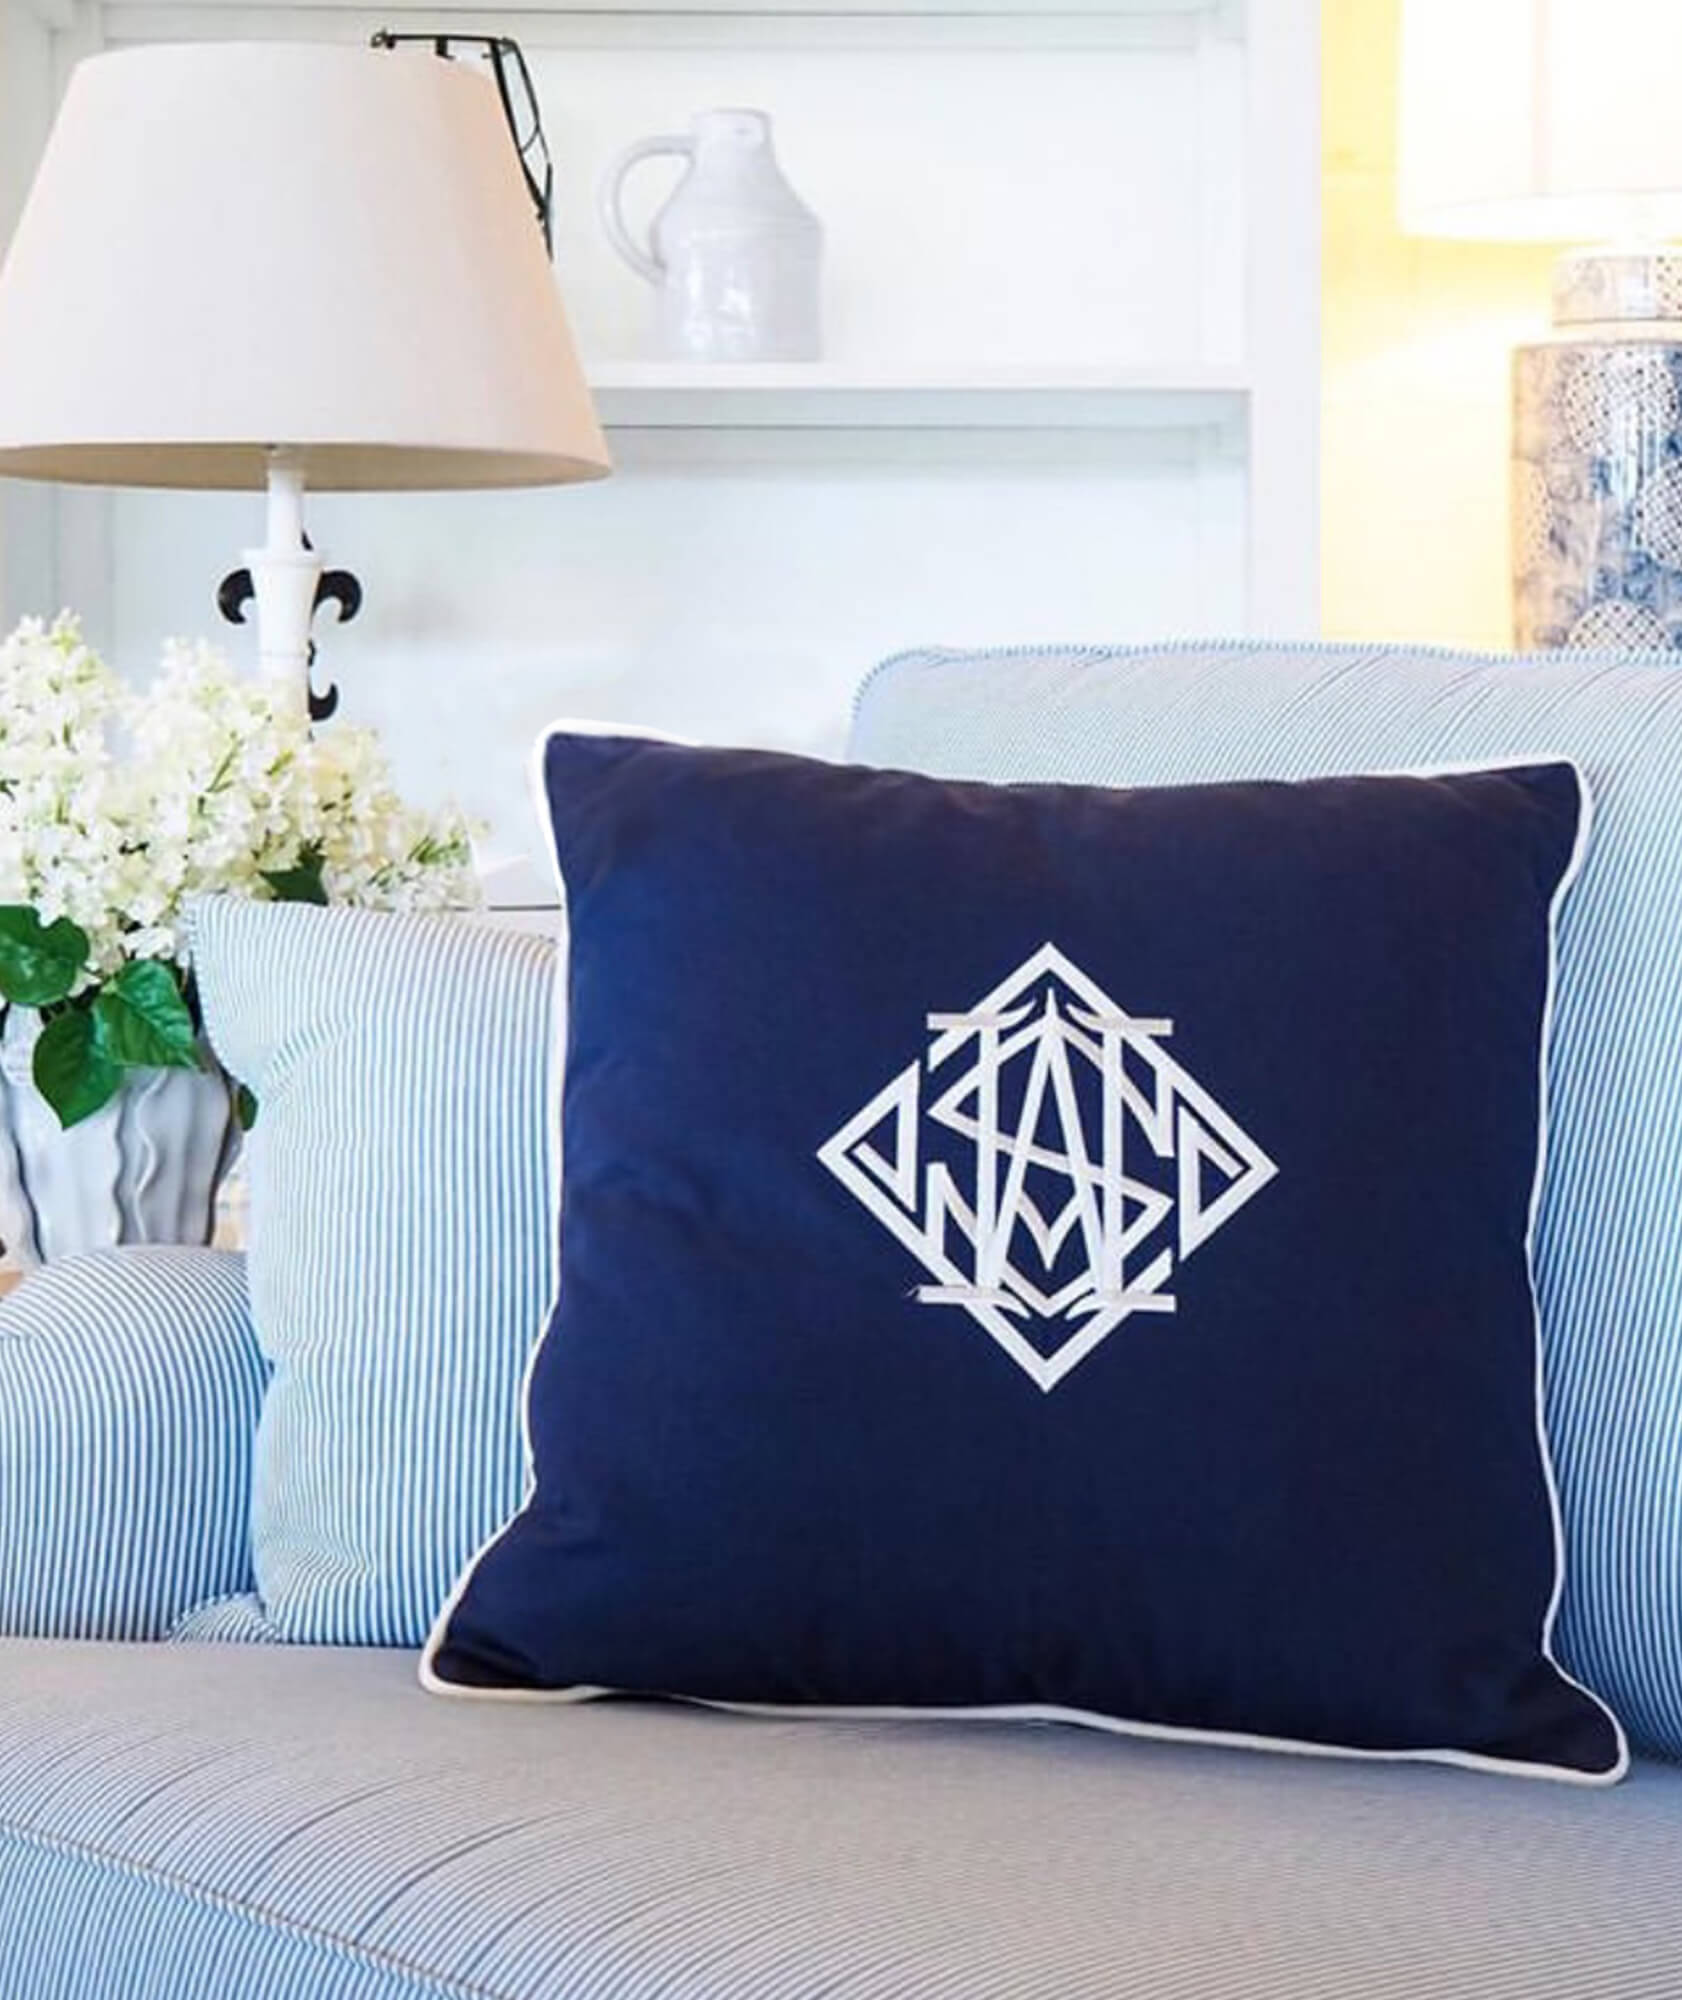 DIAMOND MONOGRAM NAVY RH2 - STUART MEMBERY HOME COLLECTION